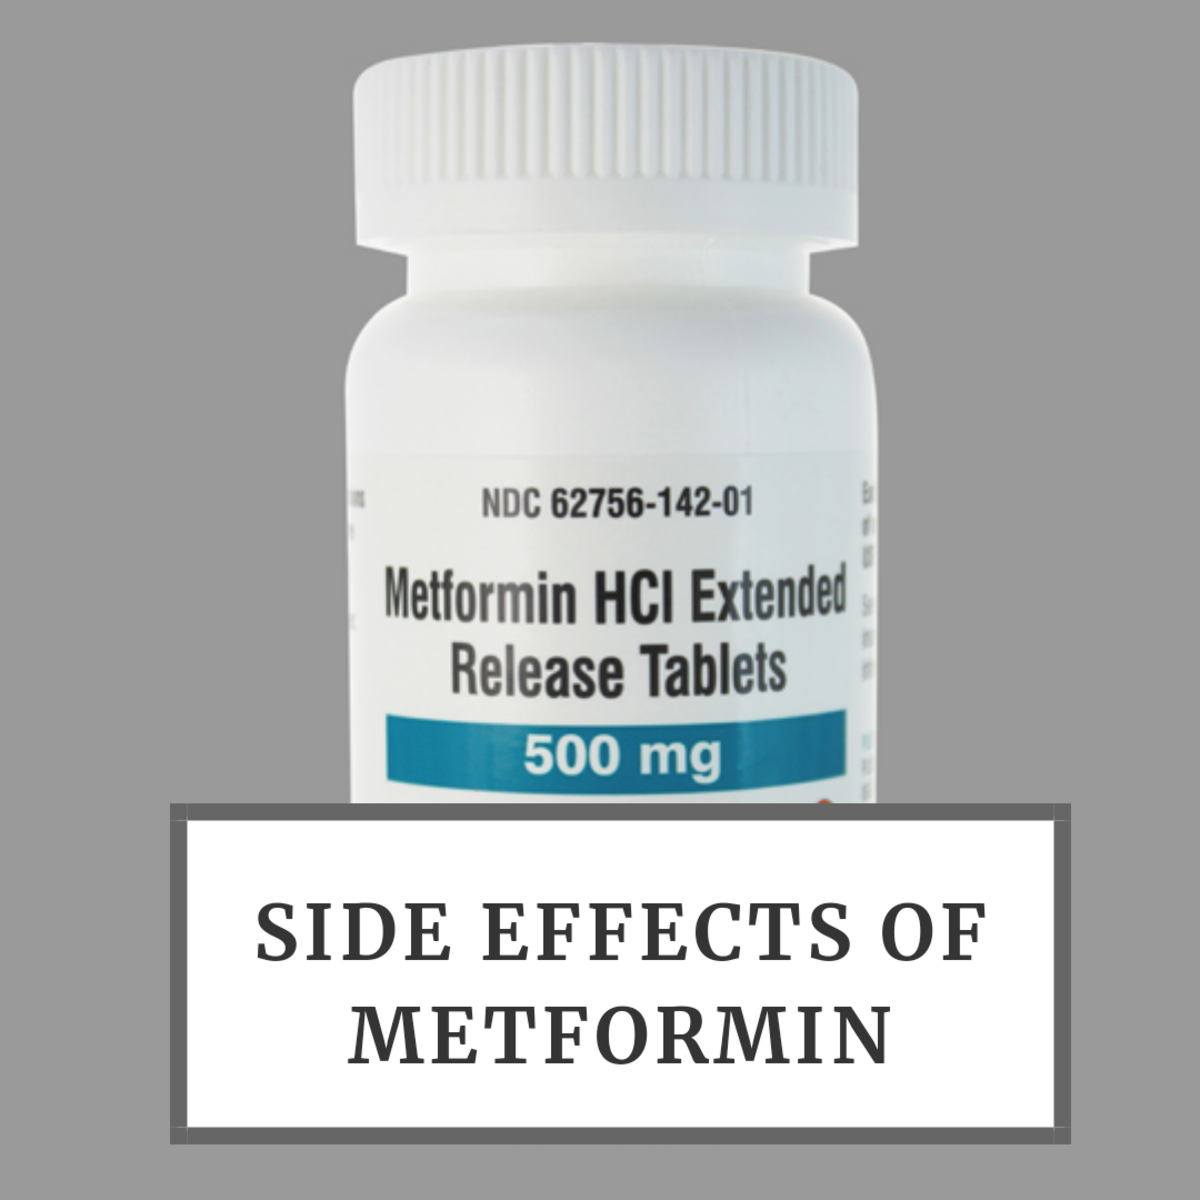 Side Effects of Metformin (Glucophage, Formamet, Glumetza)